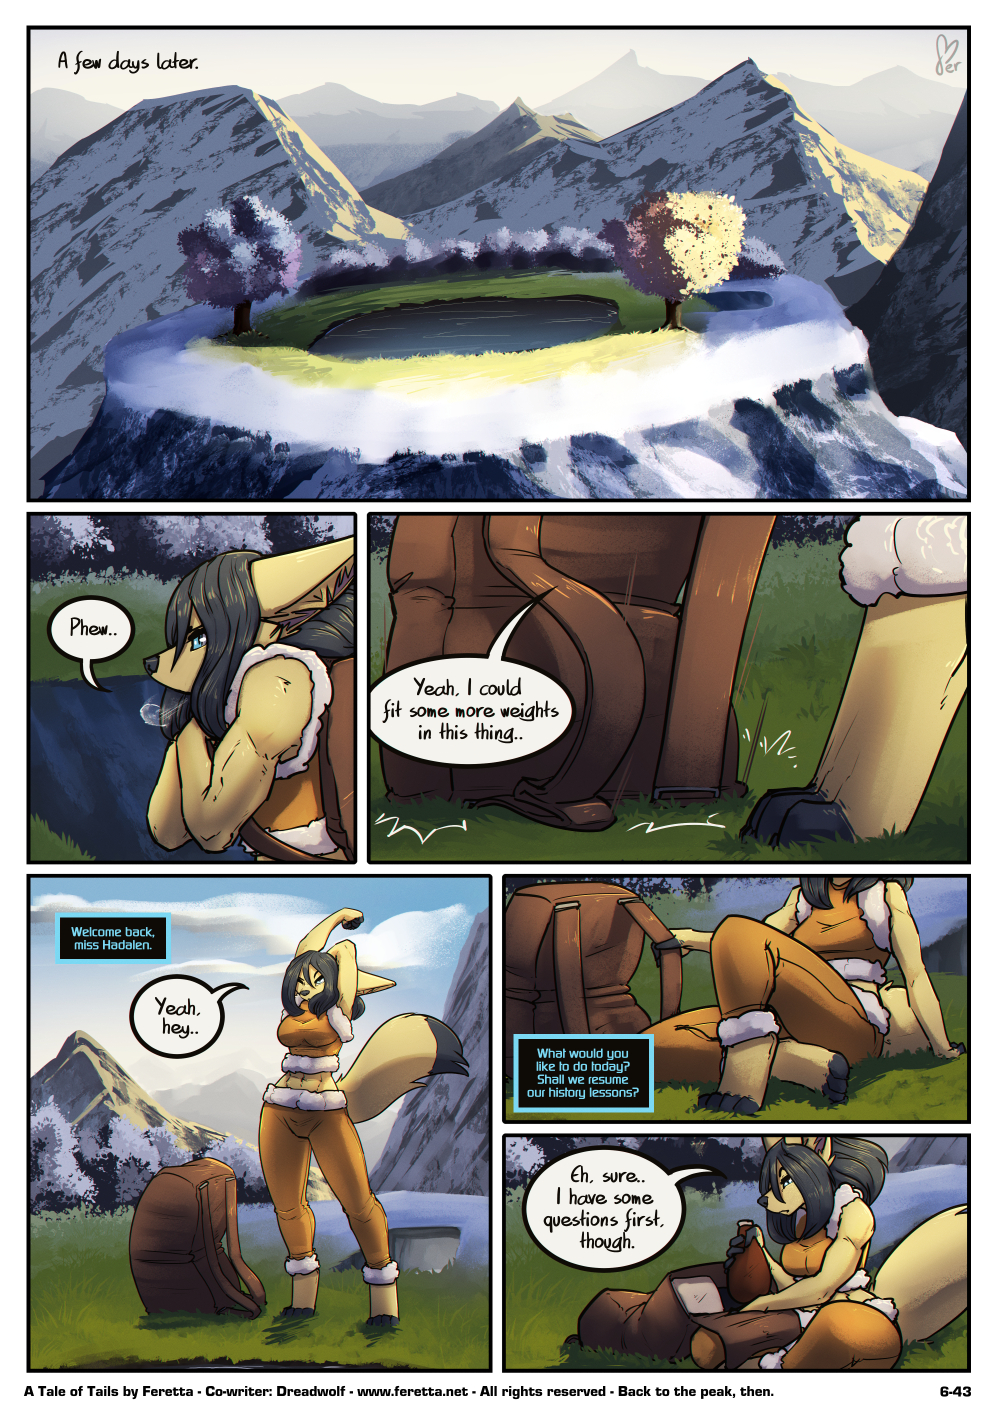 A Tale of Tails, 6-43